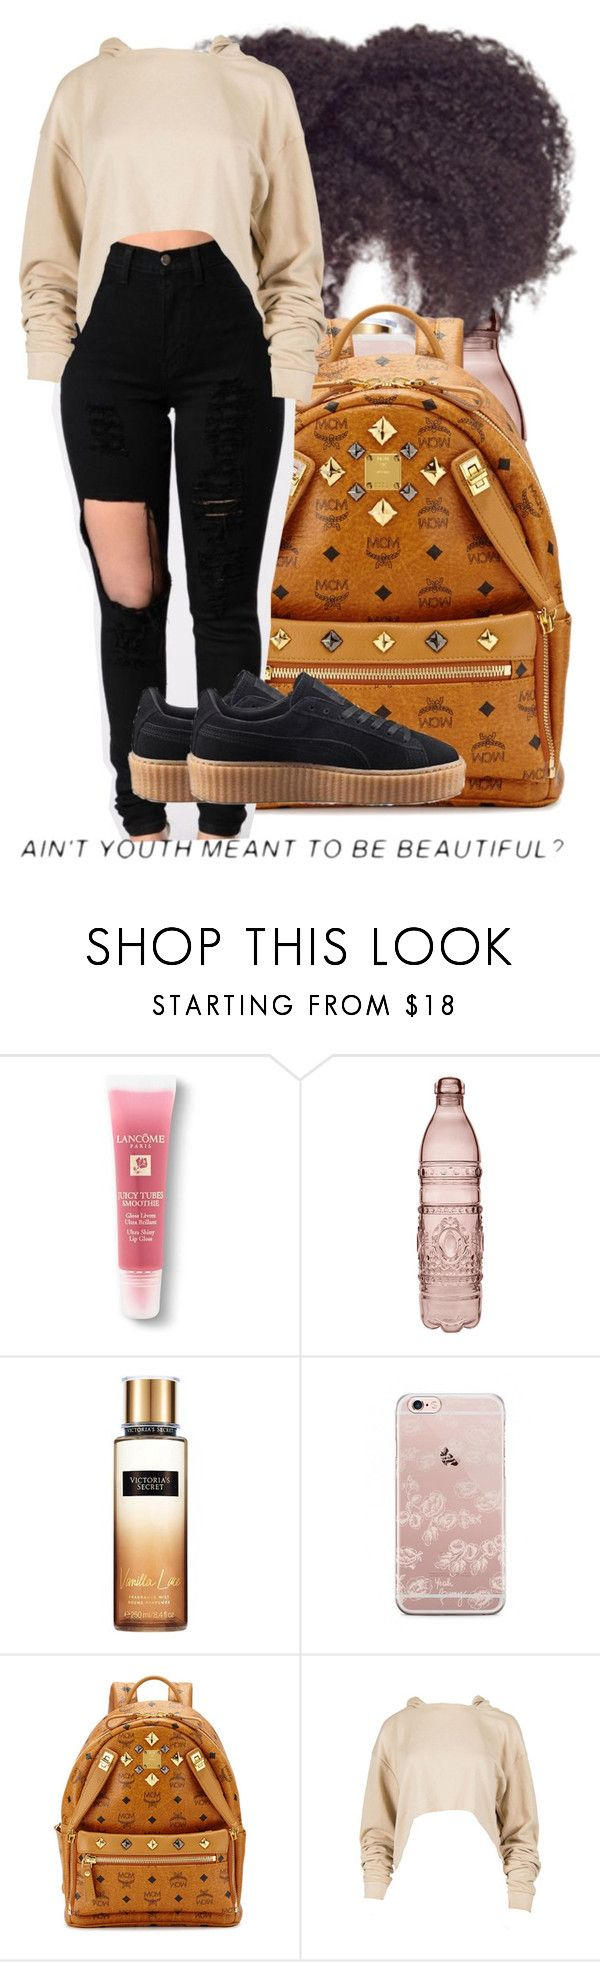 """""""ain't it?"""" by th3-qu33n-25 ❤ liked on Polyvore featuring Lancôme, Baci, Victoria's Secret, MCM and Puma"""